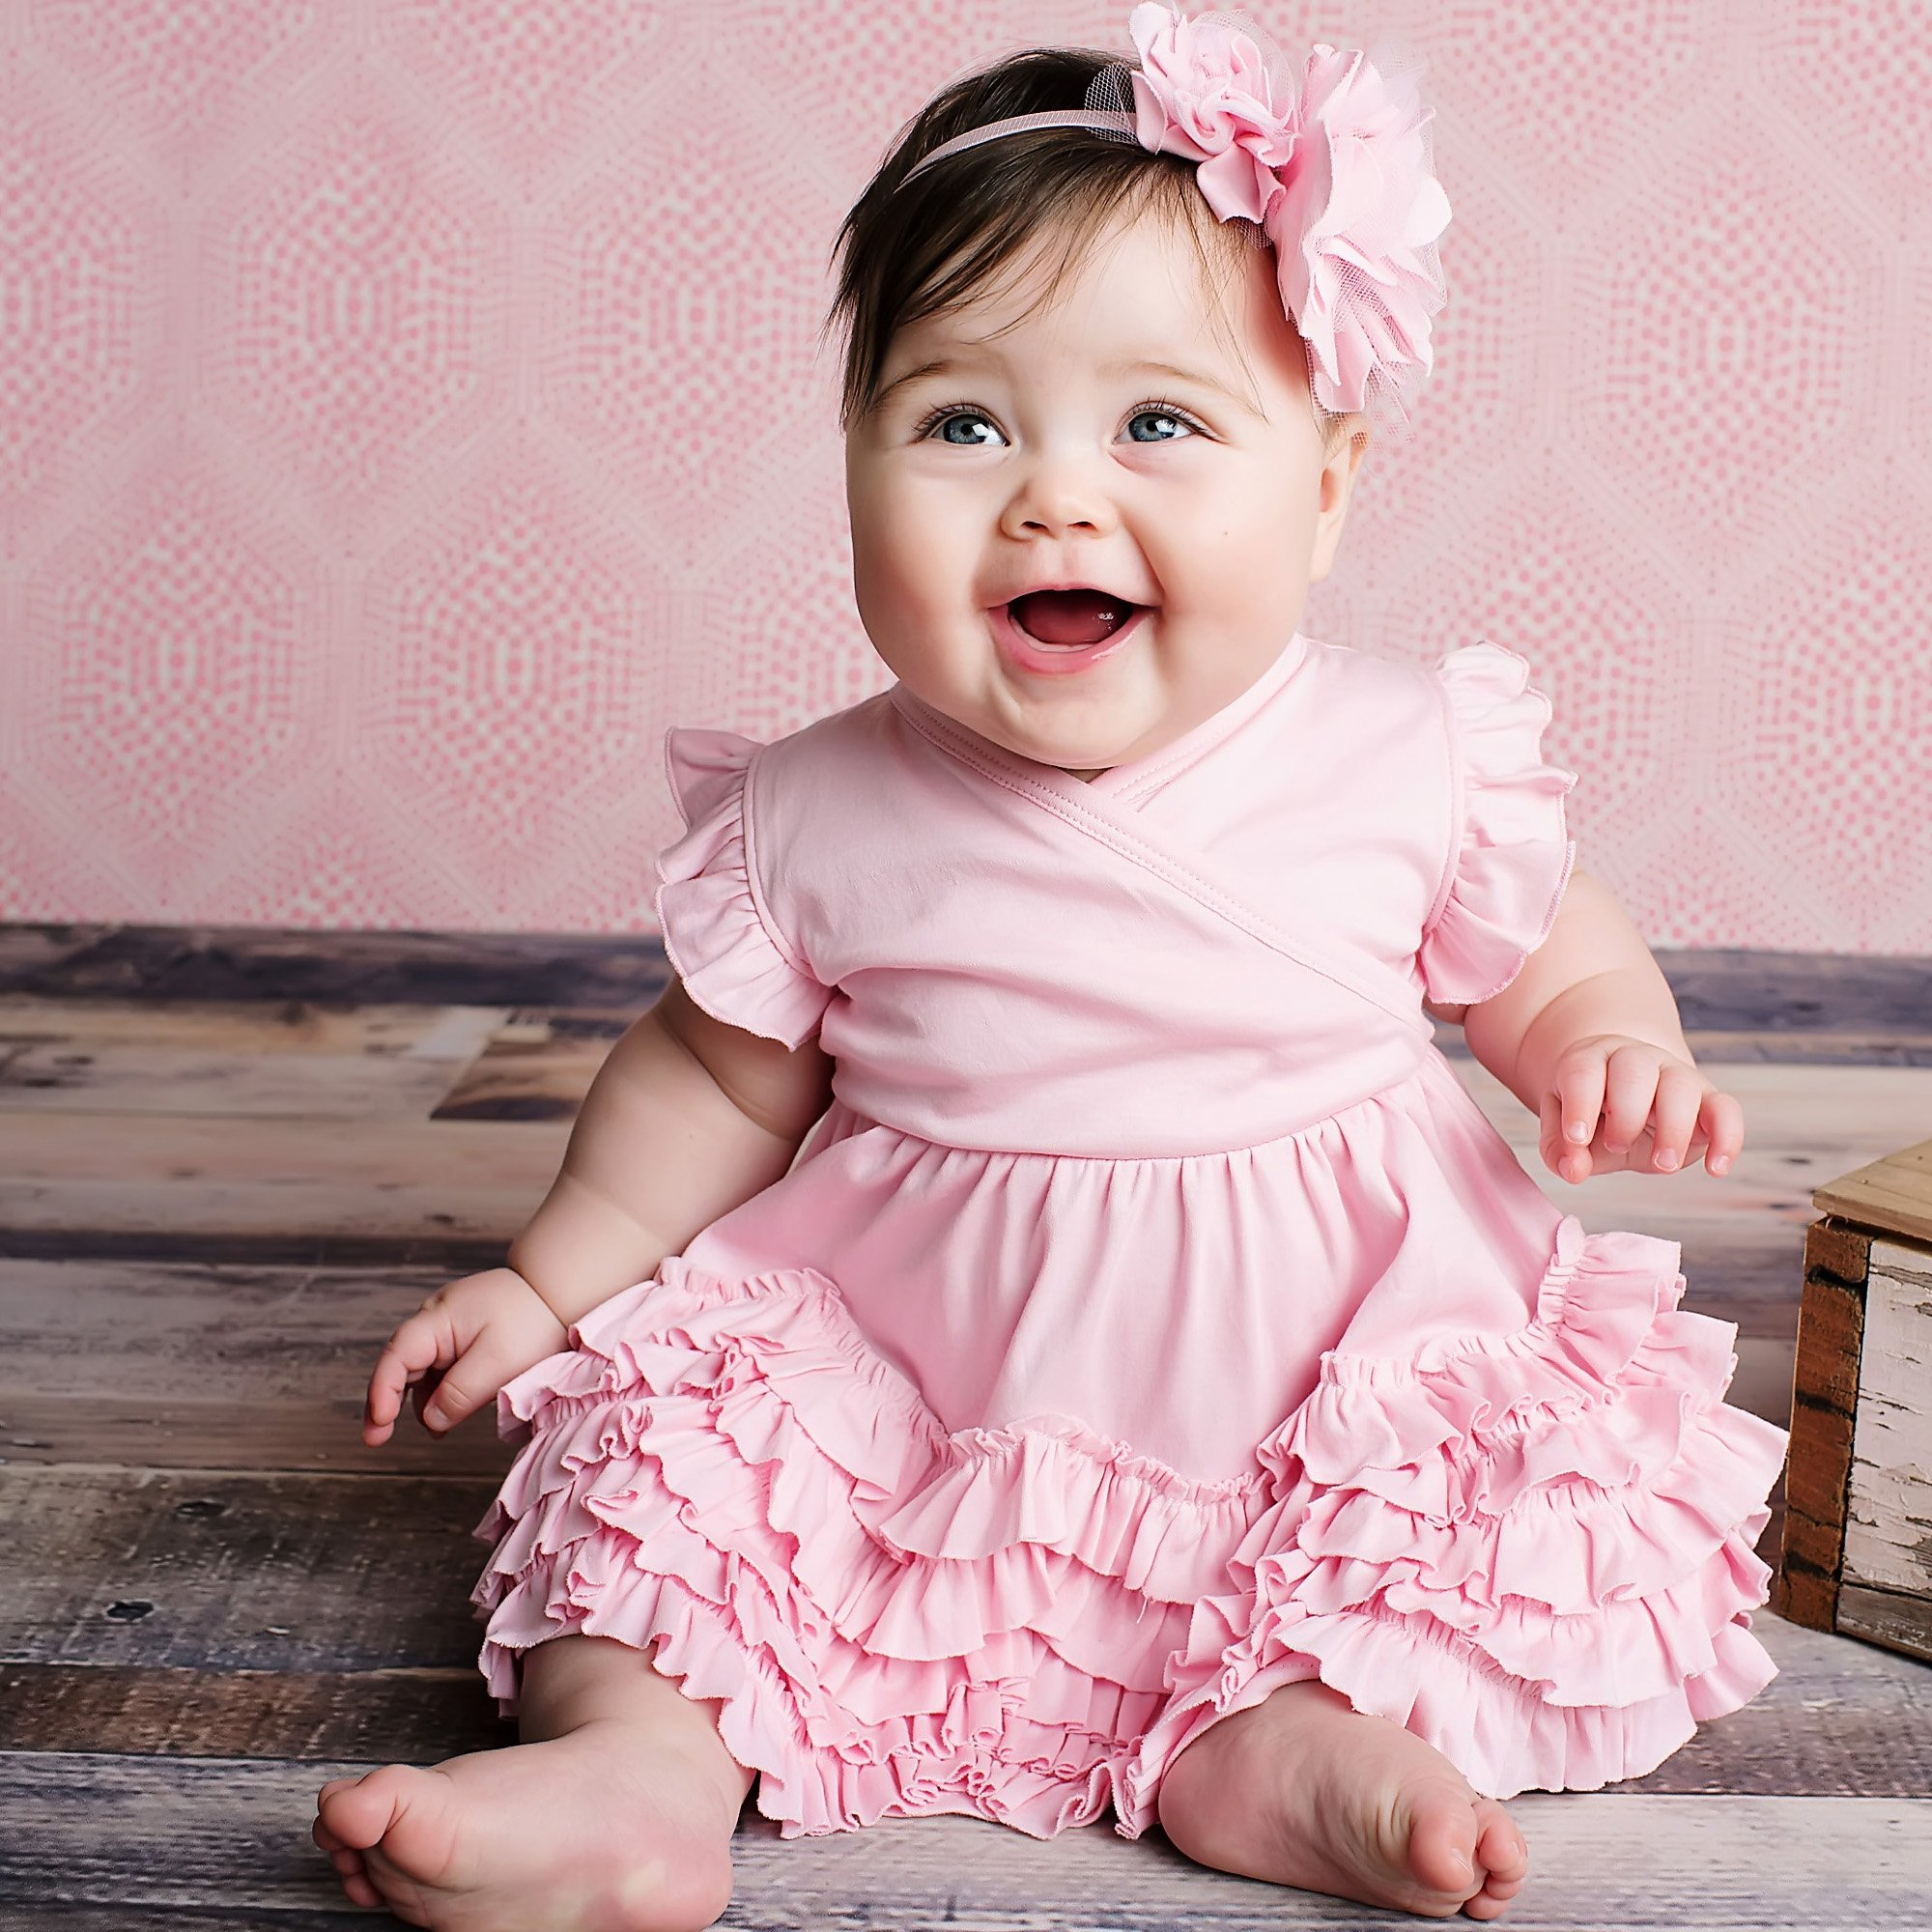 Lemon Loves Layette Pink Baby Dress - Mia in Pink